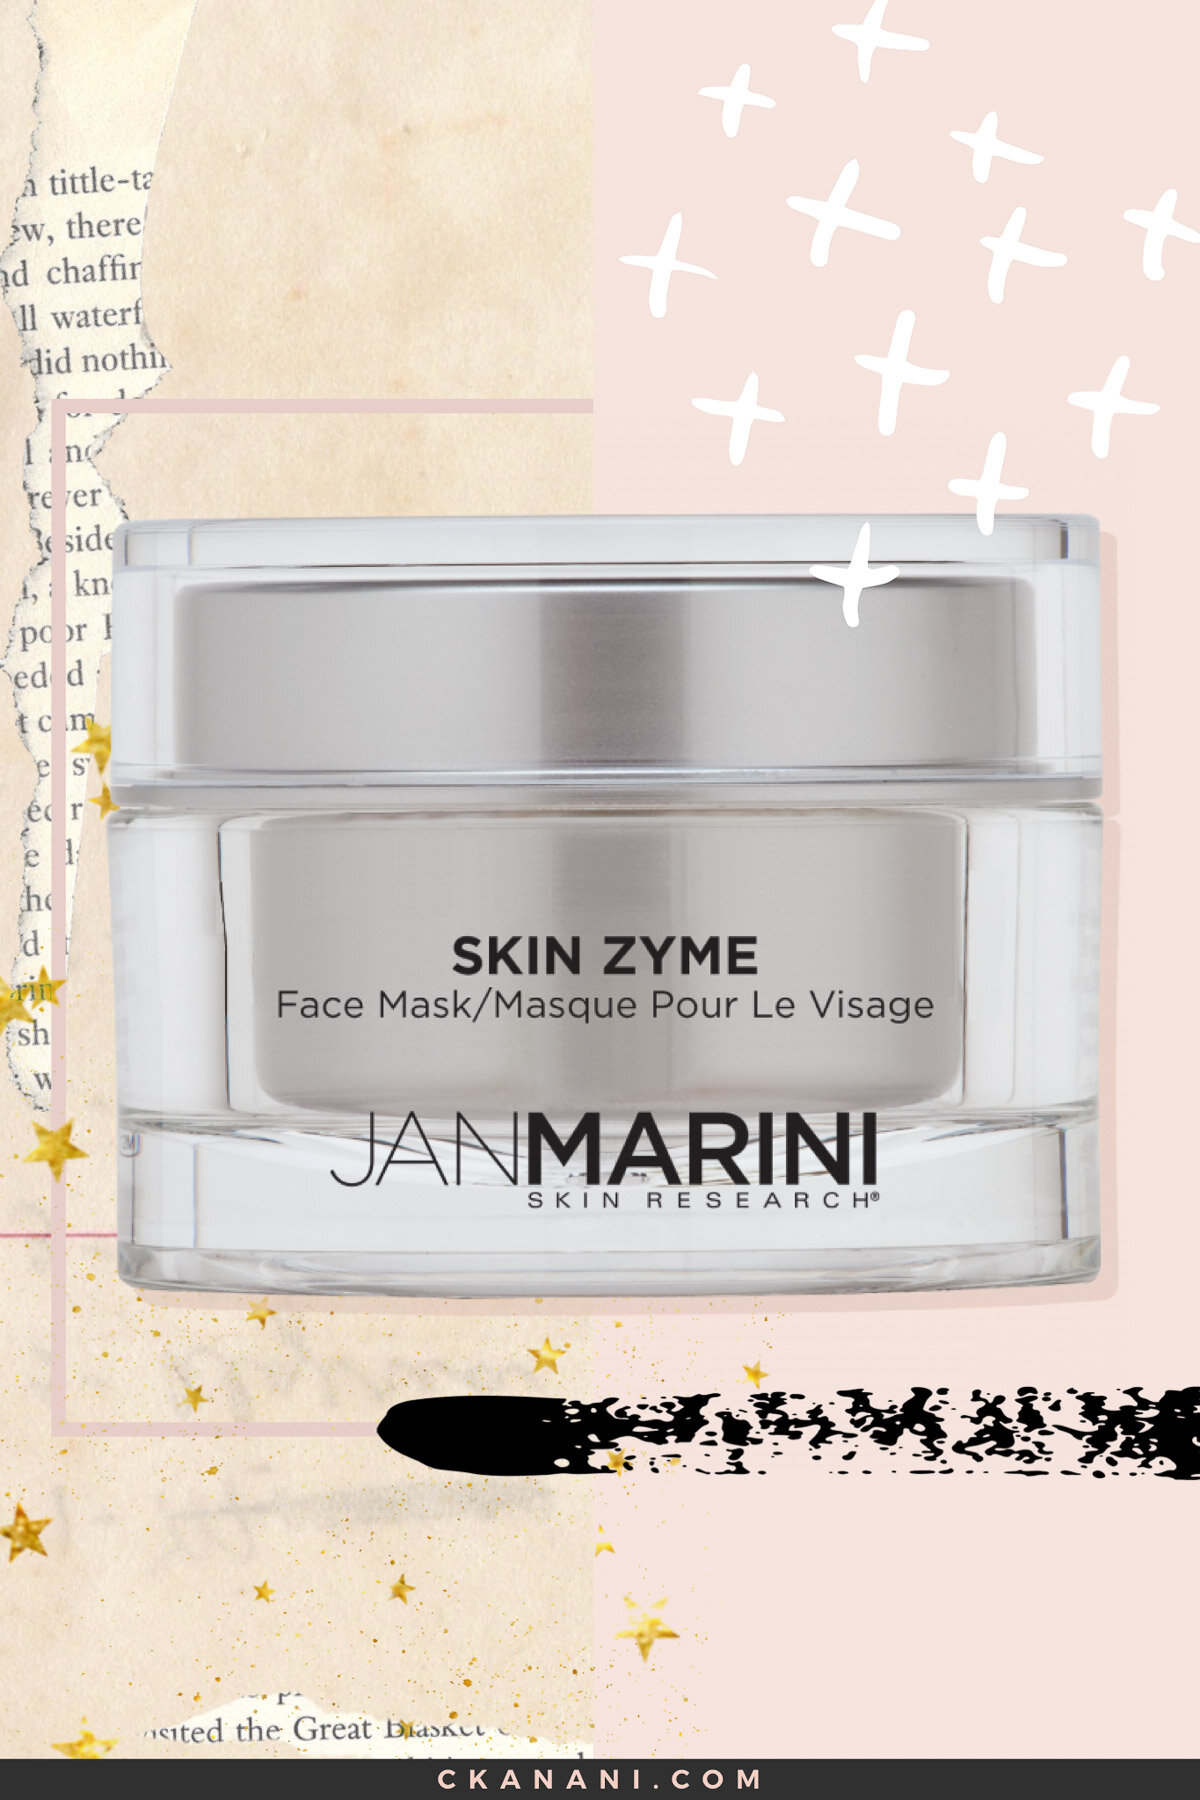 Jan Marini Skin Zyme Face Mask: The Best Face Masks